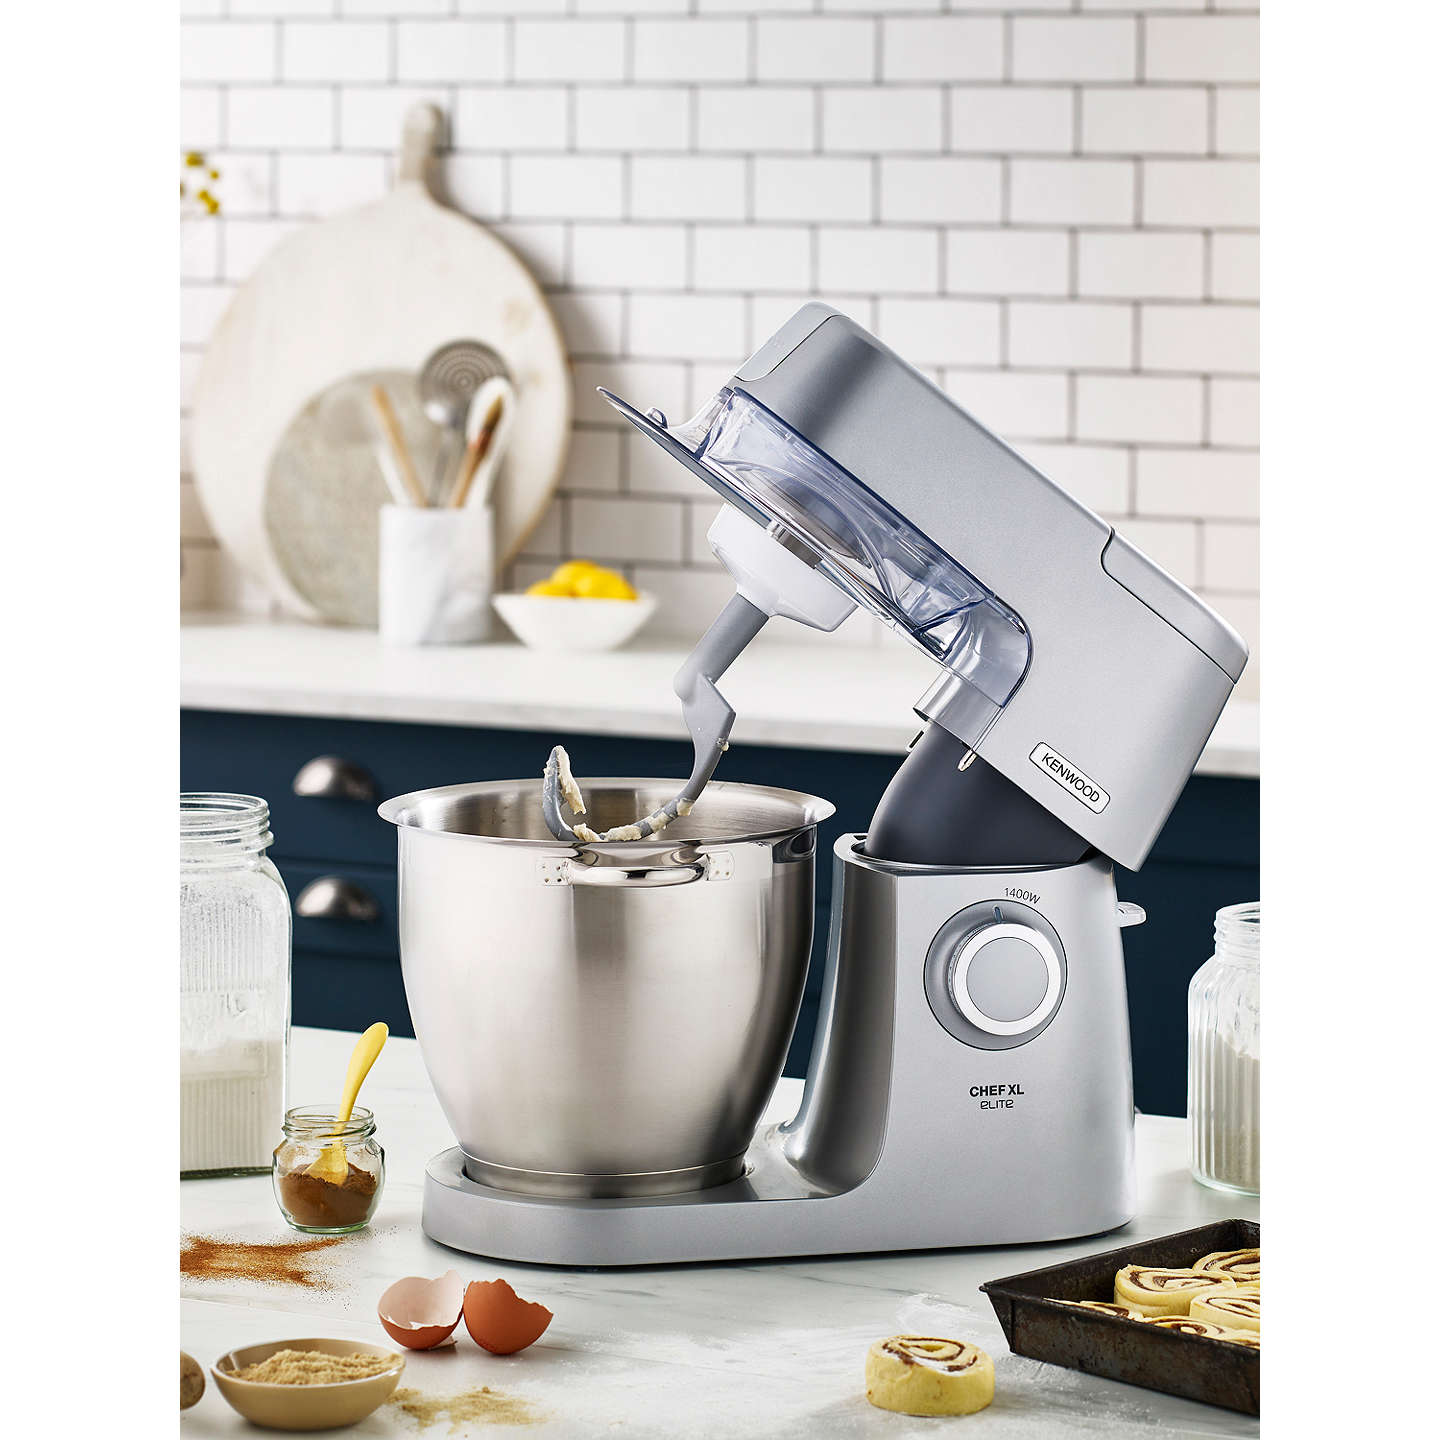 BuyKenwood KVL6100S  Chef Elite XL Stand Mixer, Silver Online at johnlewis.com